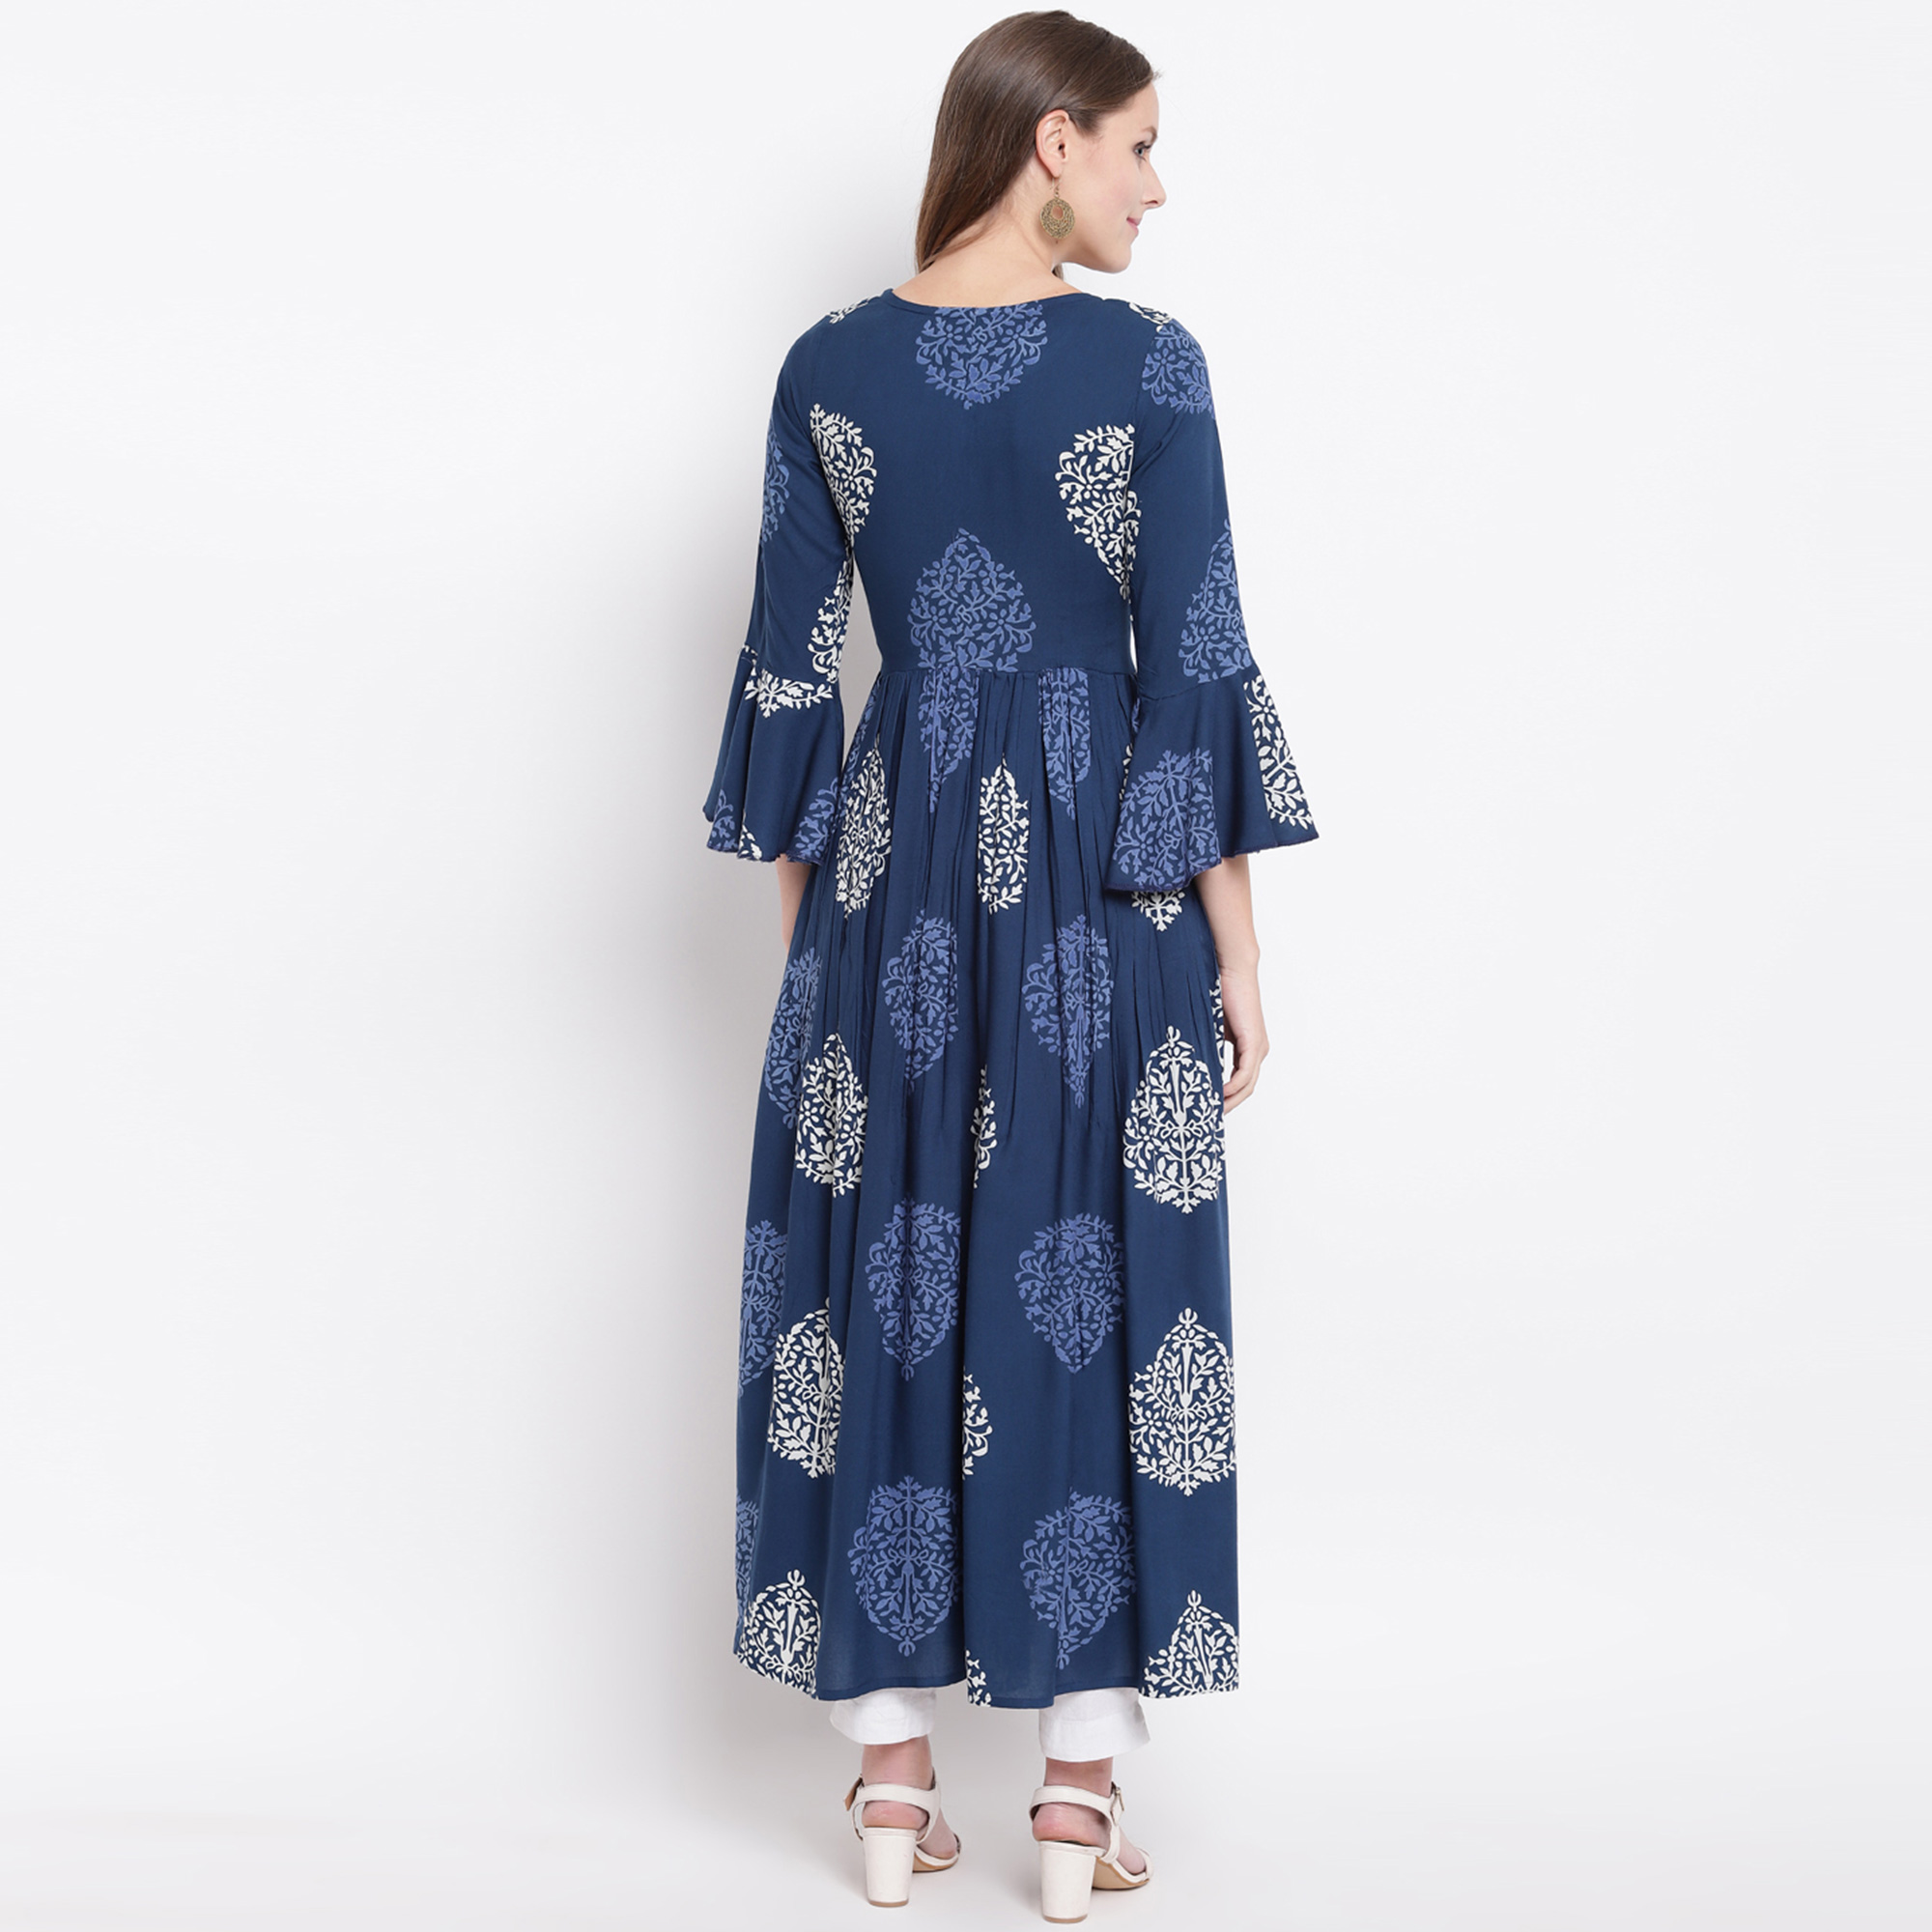 Intricate Navy Blue Colored Casual Floral Printed Rayon Kurti